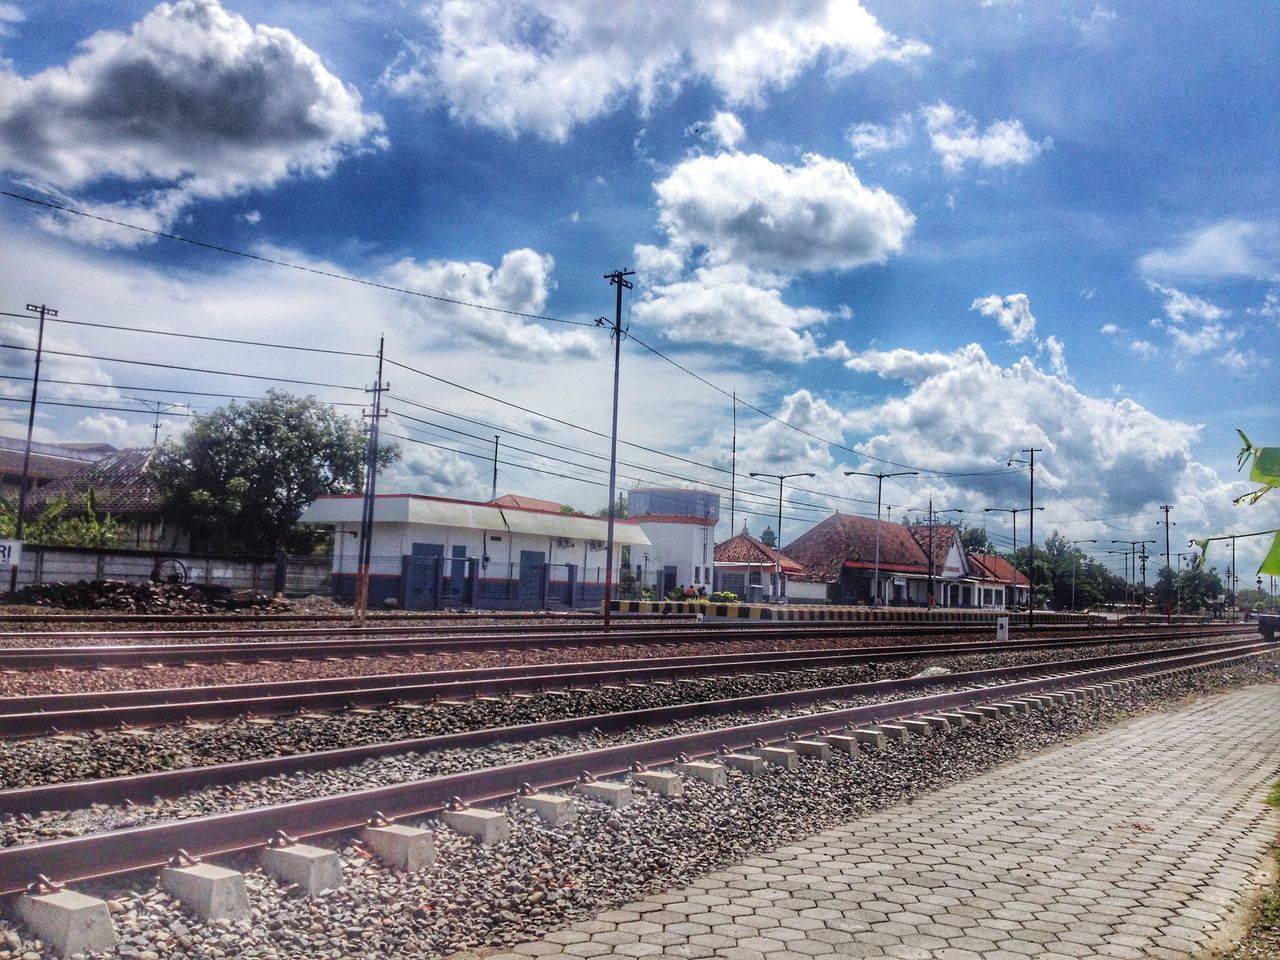 sky, transportation, railroad track, rail transportation, cloud - sky, day, outdoors, no people